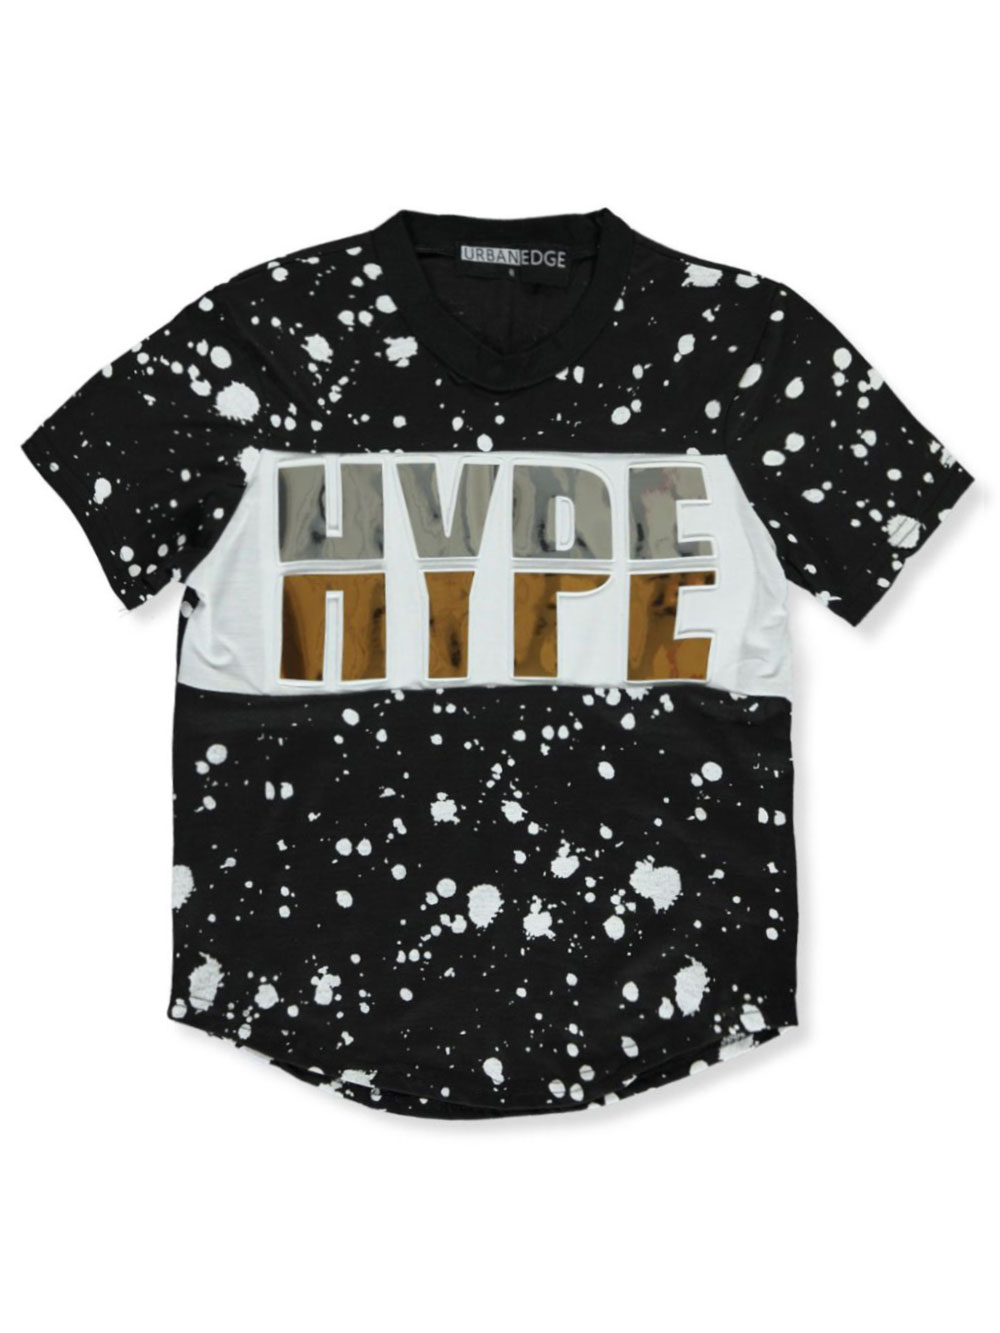 Boys' Hype T-Shirt